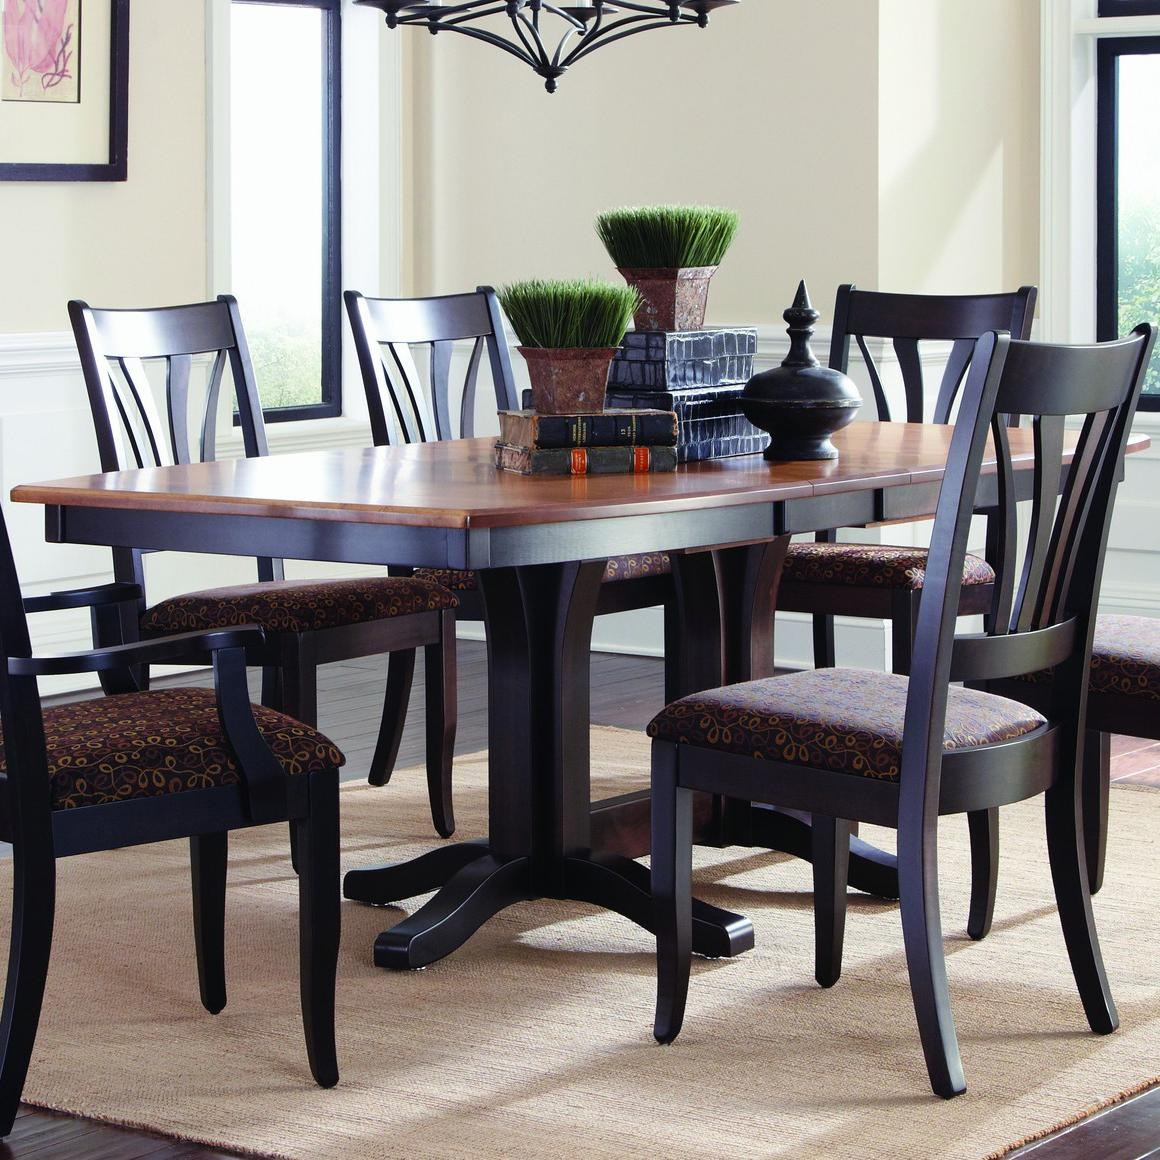 palettes furniture. Palettes By Winesburg Hartford Customizable Table Furniture